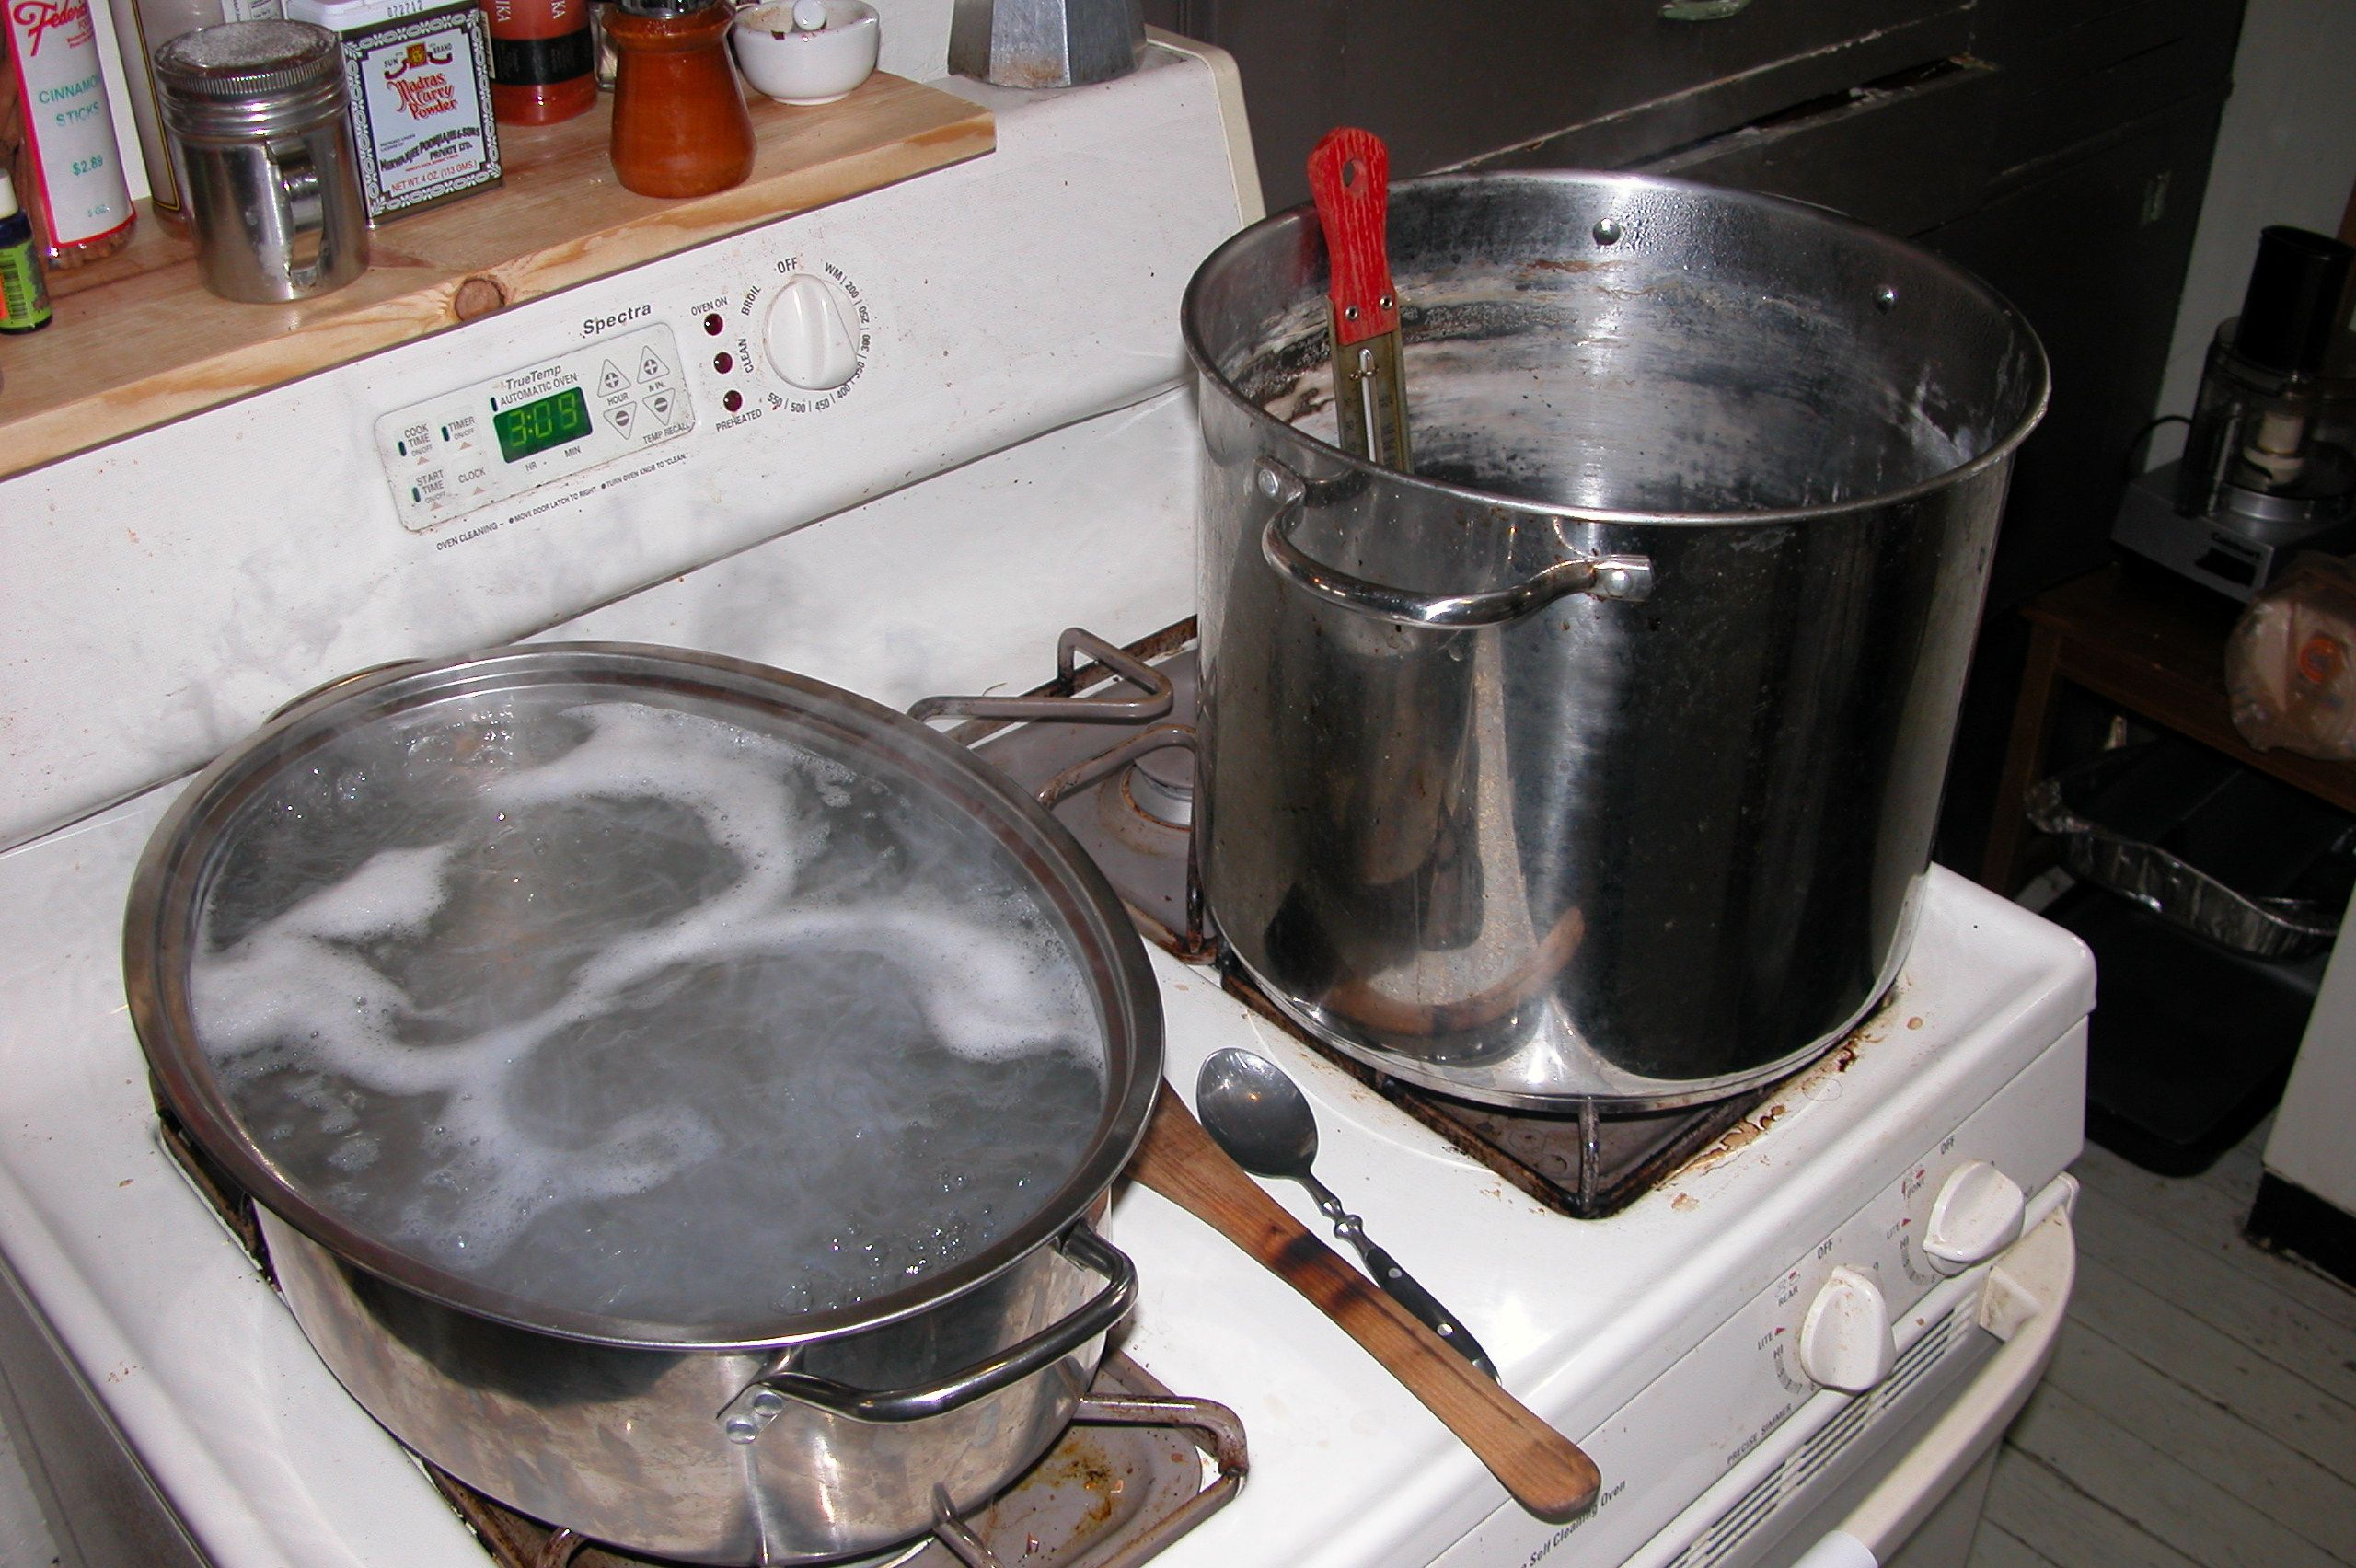 How to Boil Maple Syrup at Home also looks like a cool site fr other homestead ideas